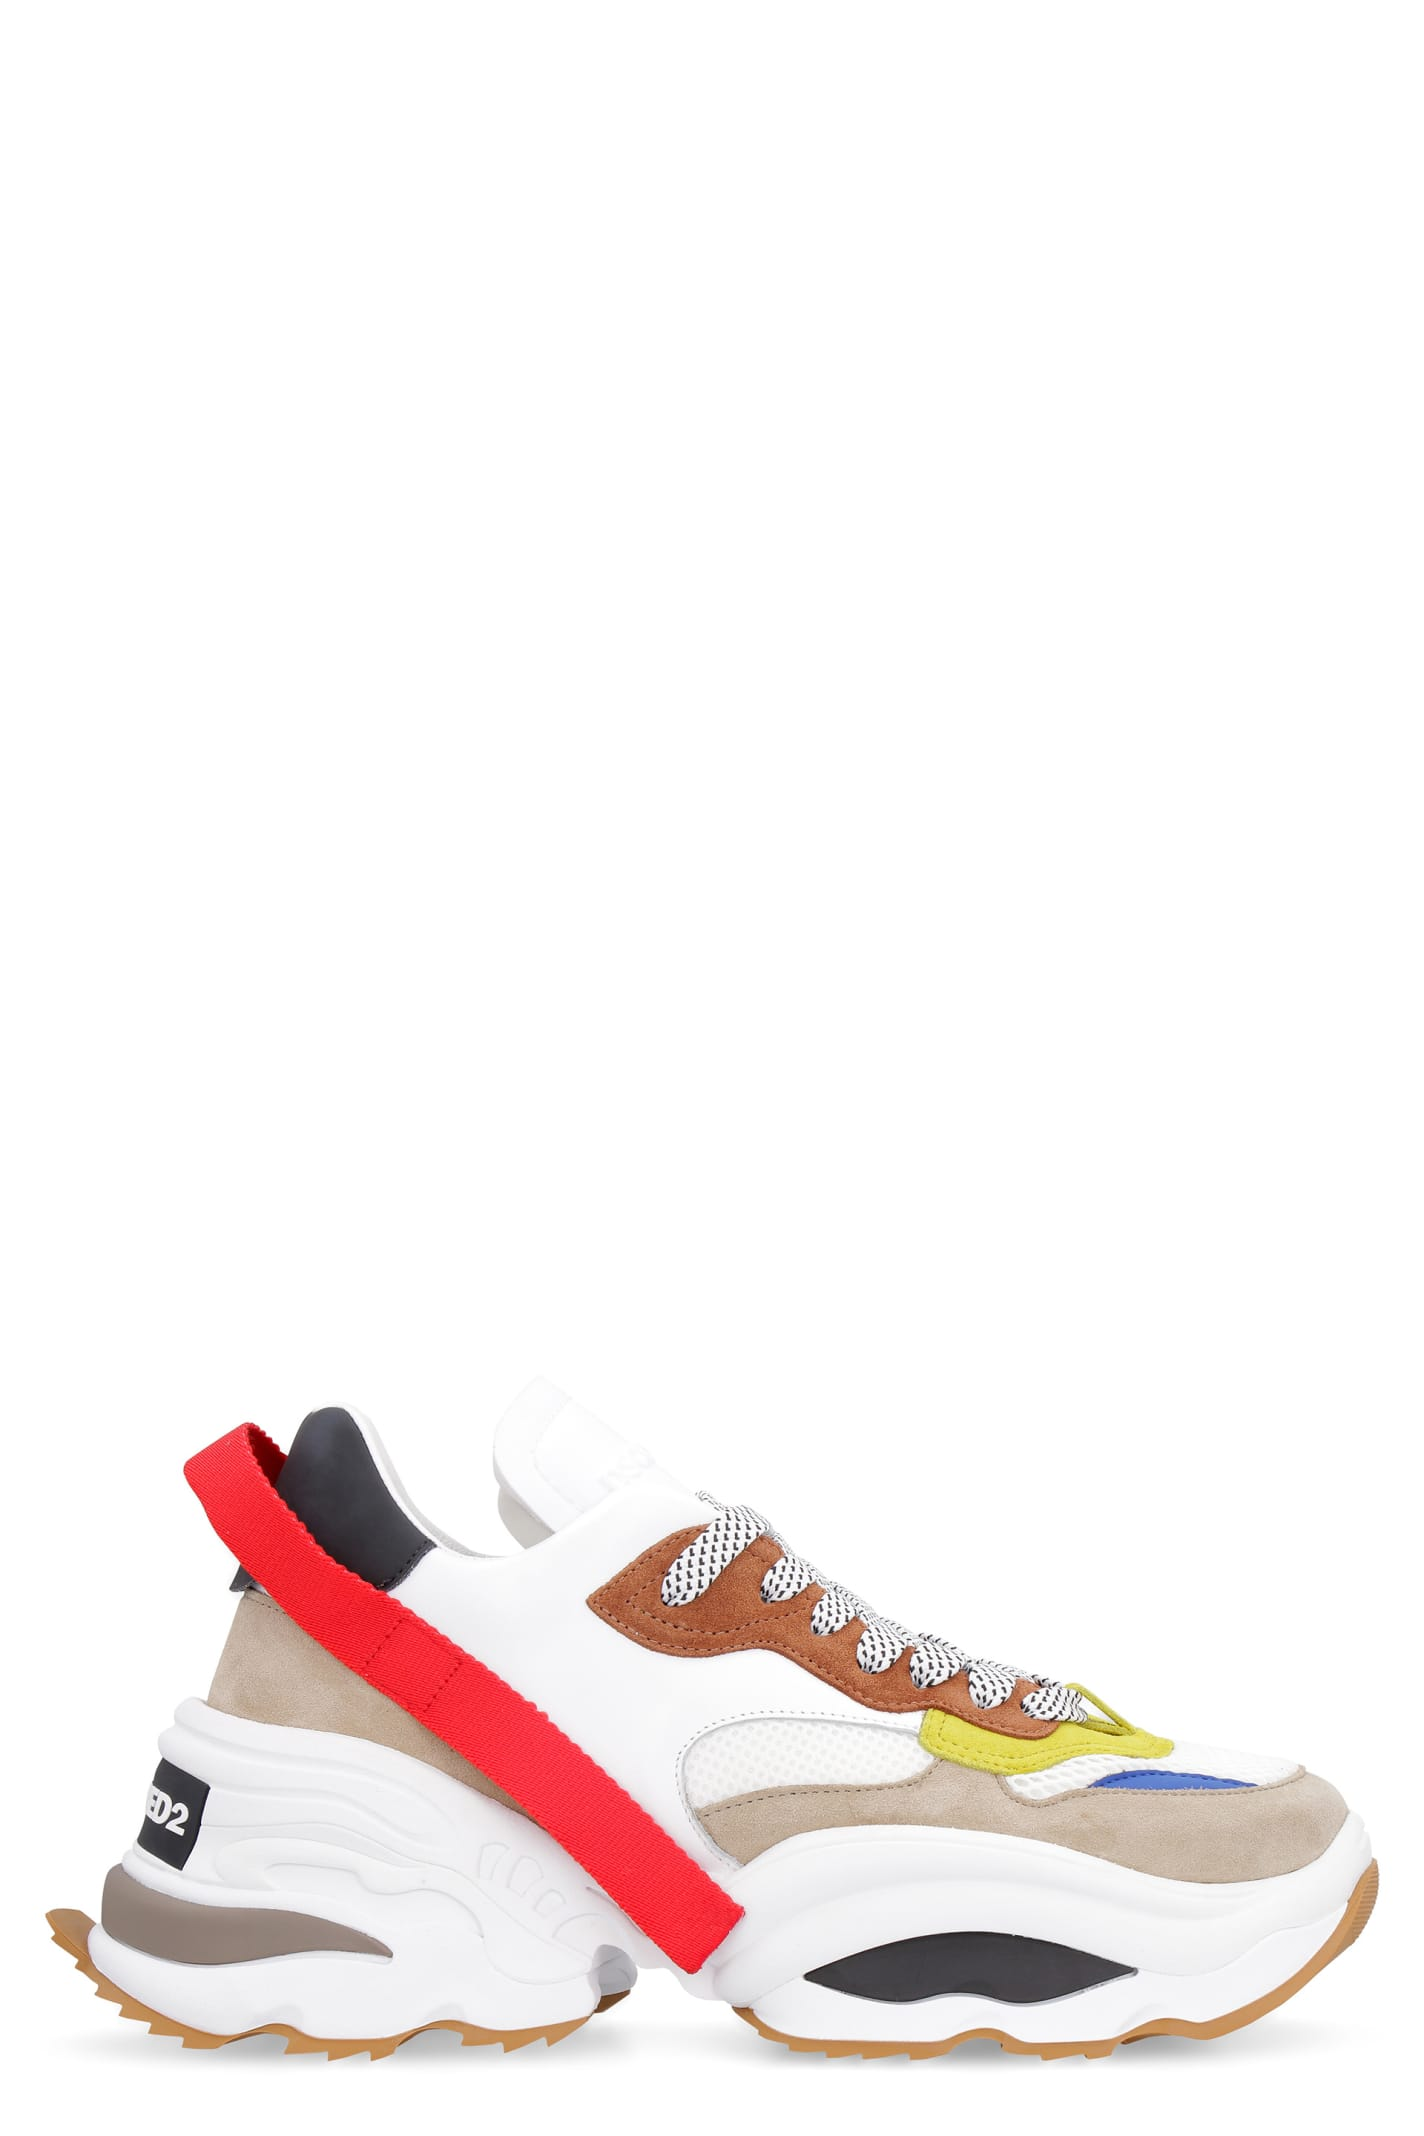 Dsquared2 The Giant Leather Sneakers